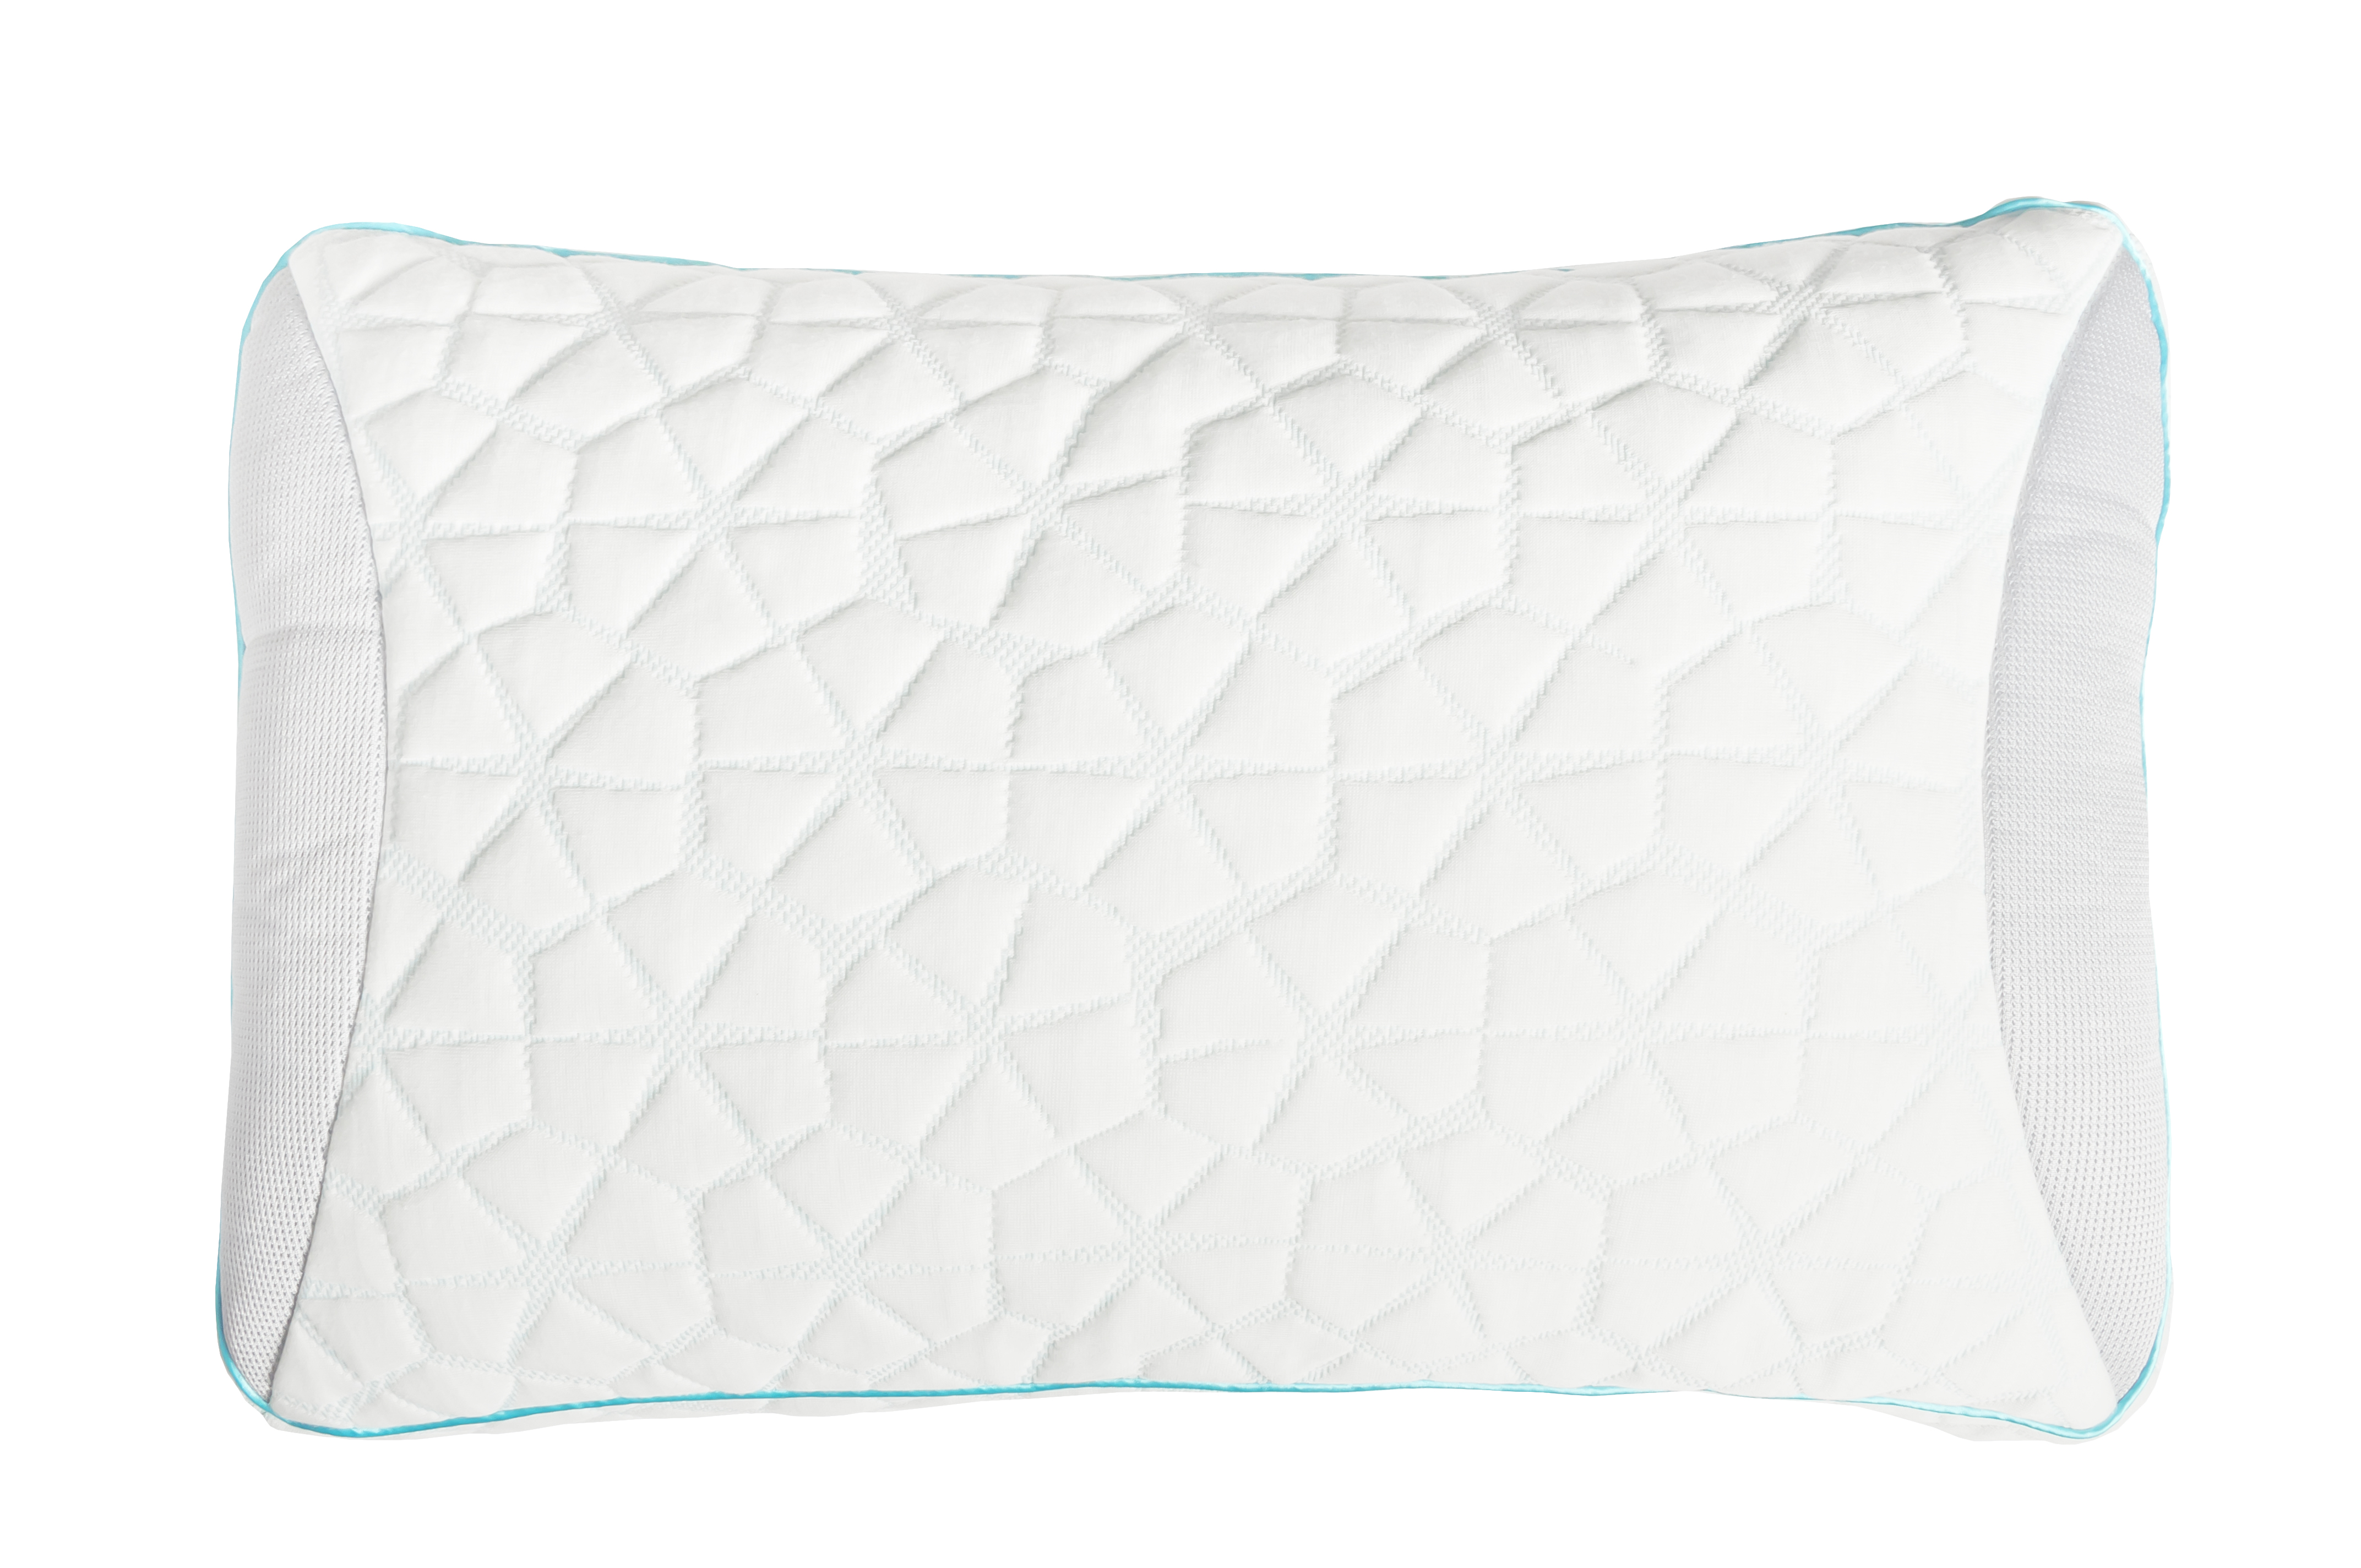 classic pillows amazon foam amp bath memory work that pillow lovely cooling of pinzon bedding